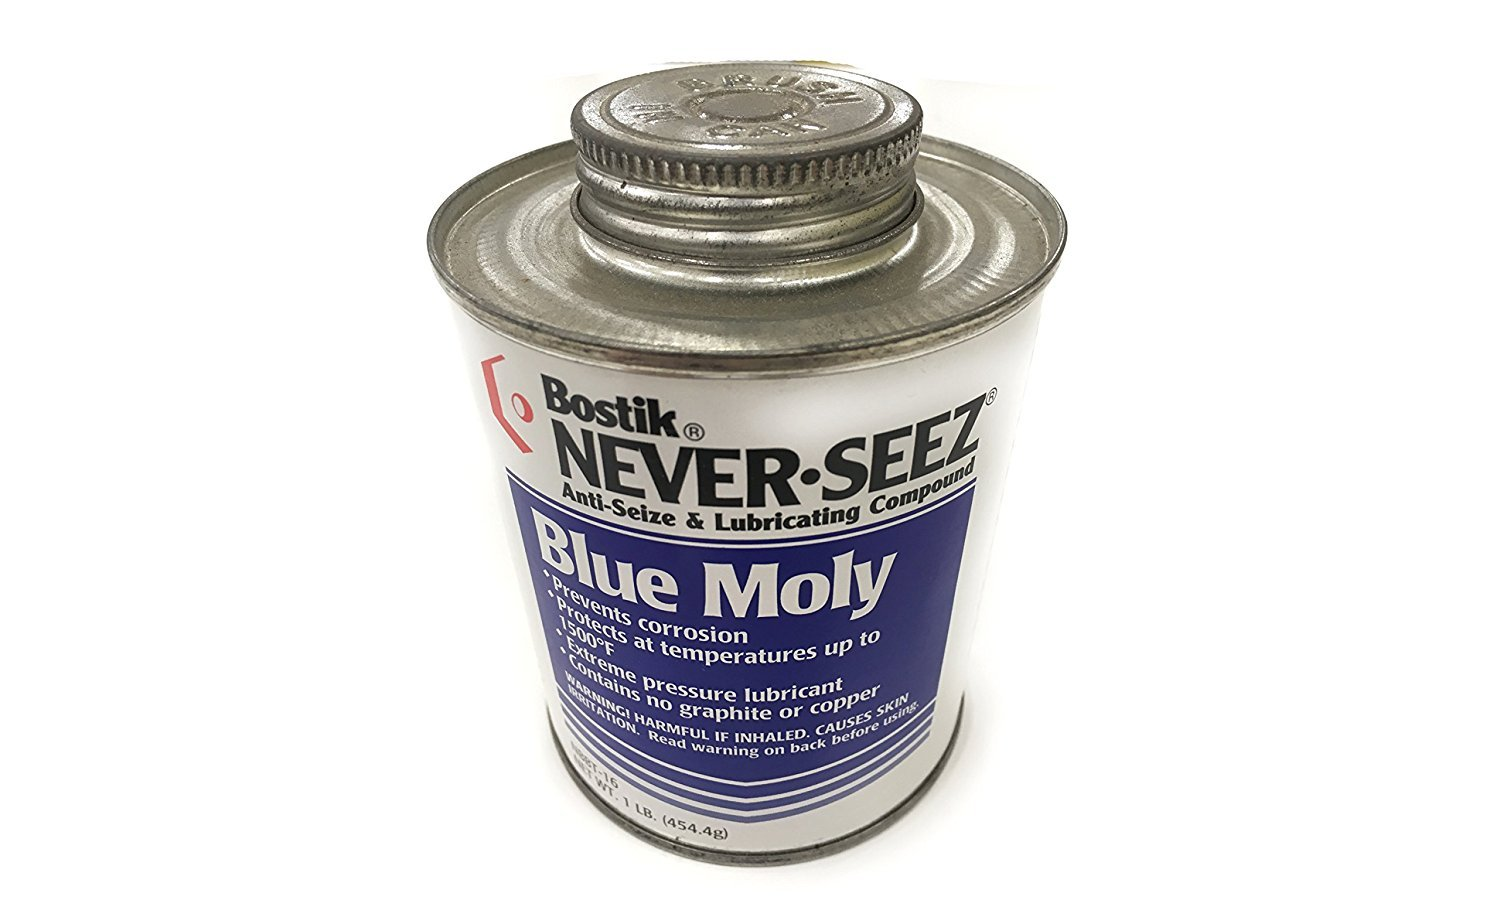 Blue Moly Compounds, 8 oz Brush Top Can (10 Pack)